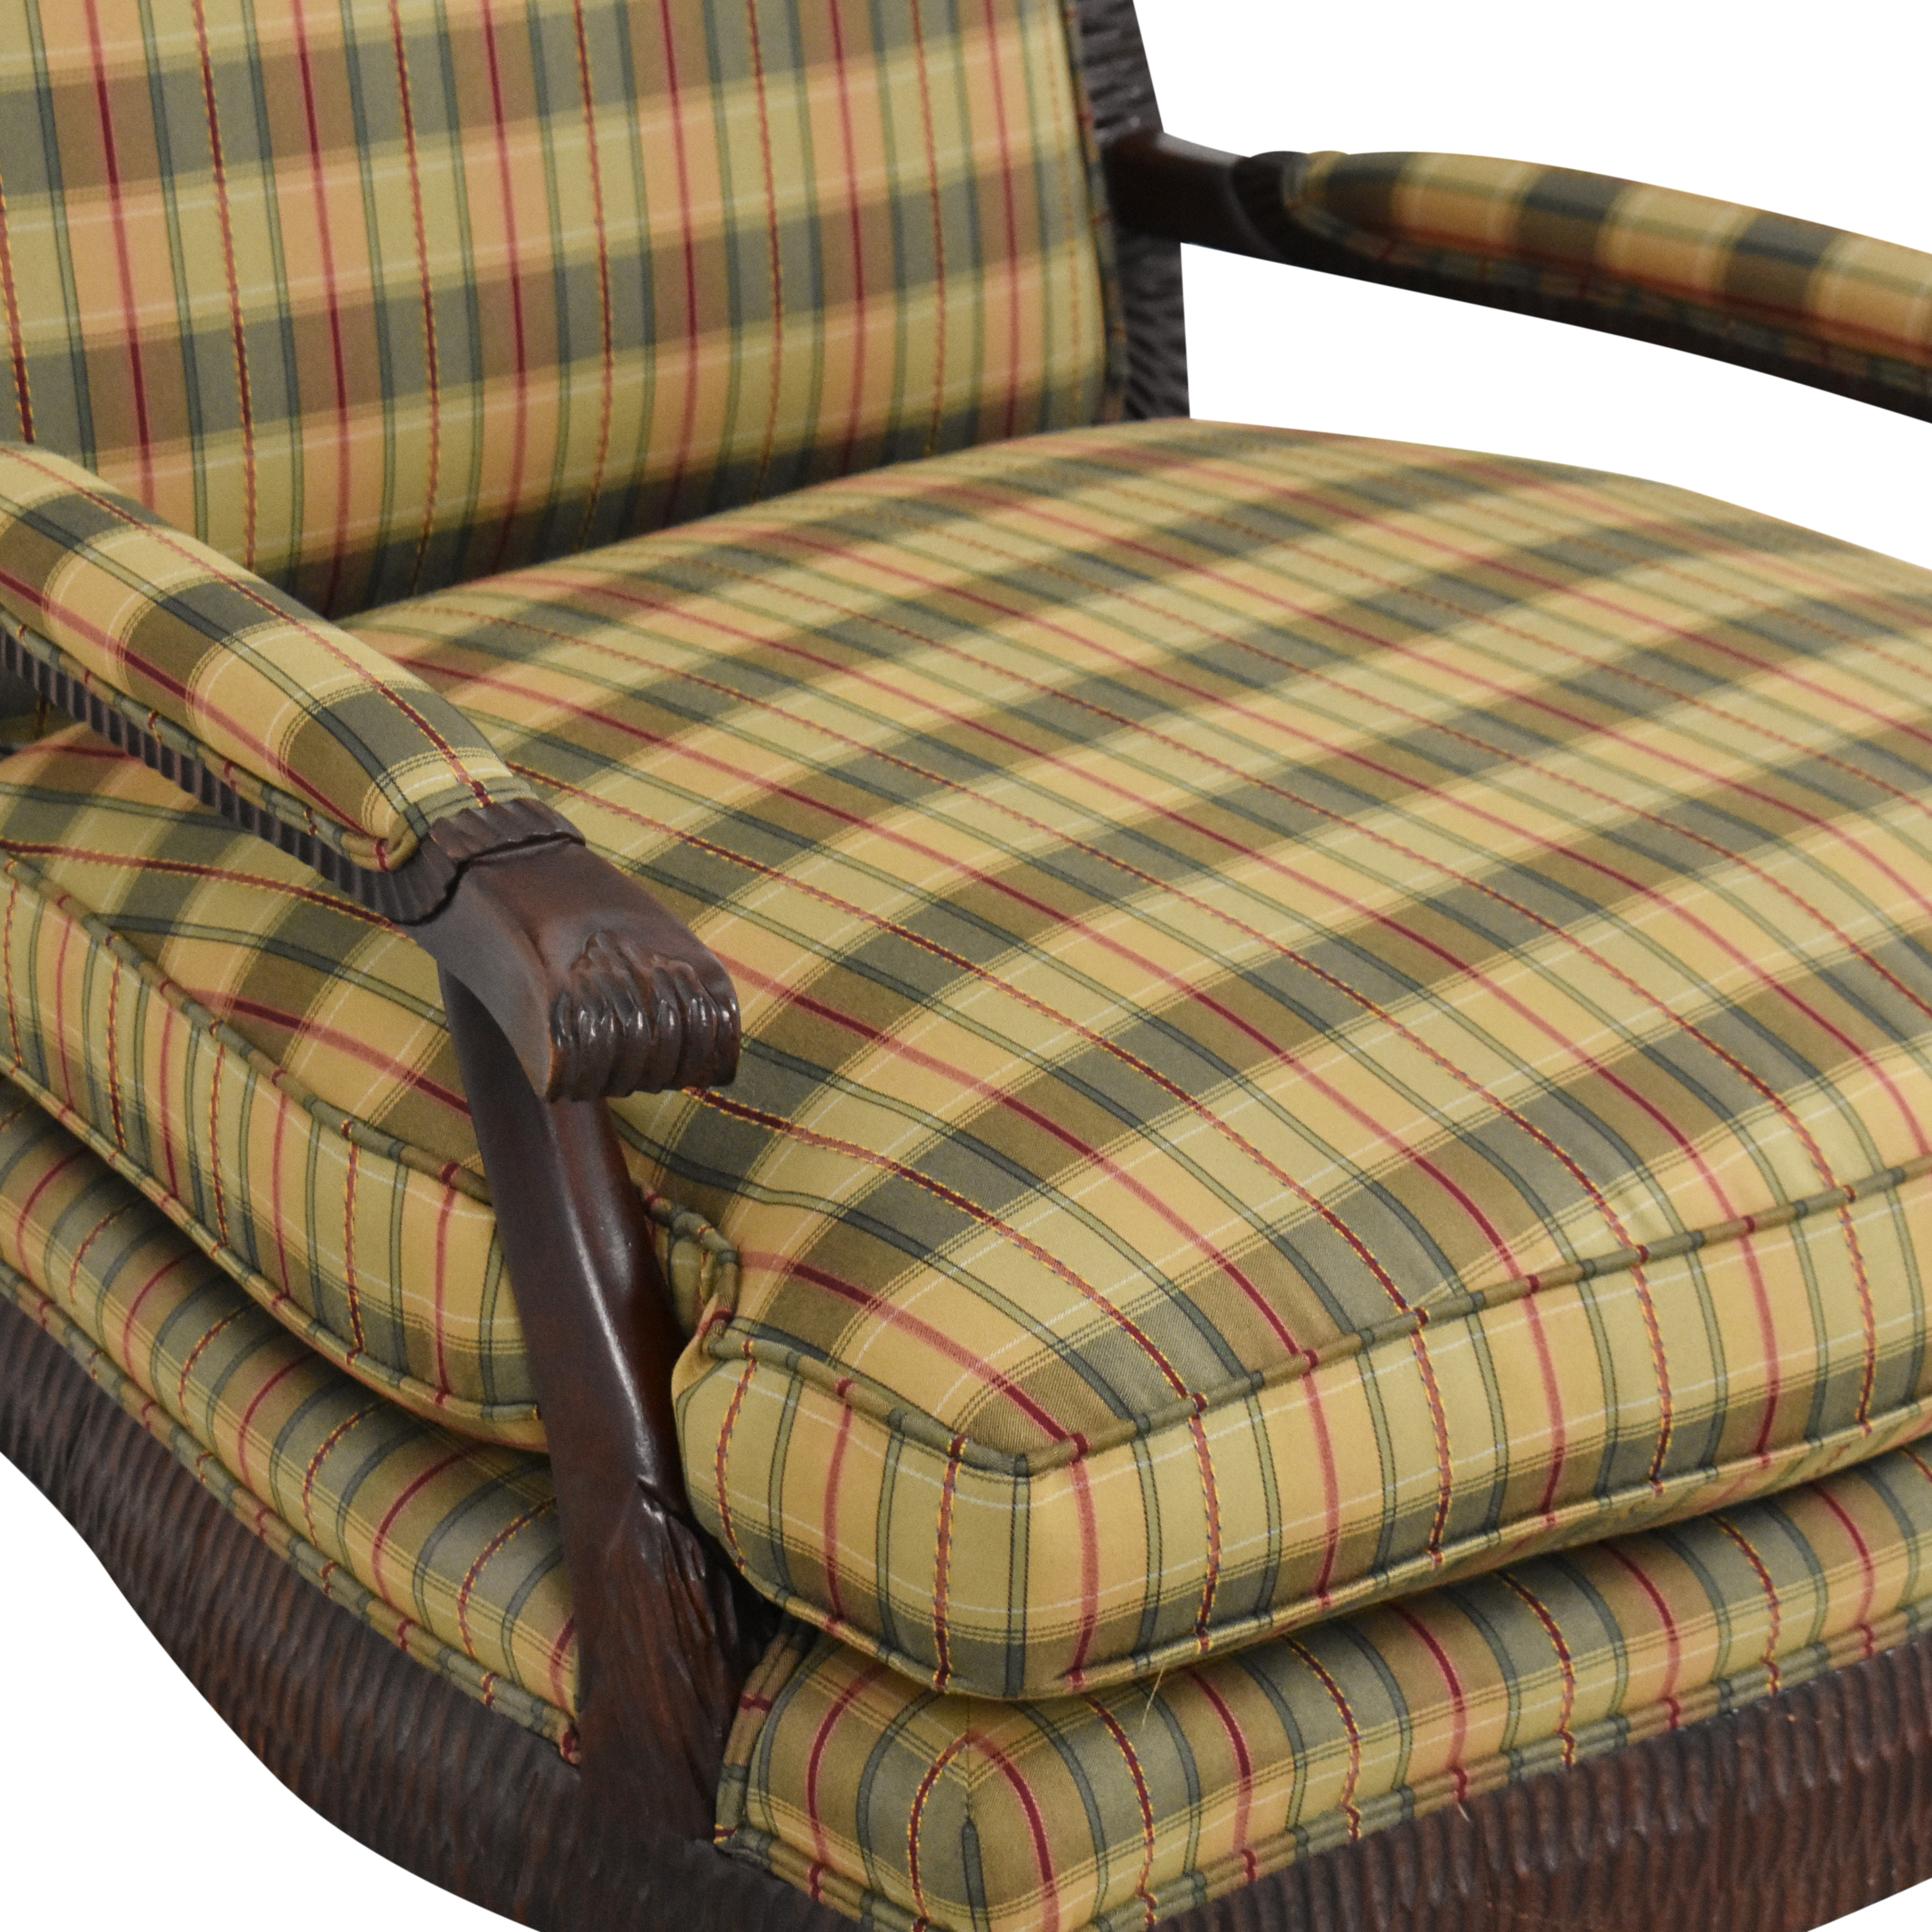 Lexington Furniture Lexington Furniture Upholstered Accent Chair nyc